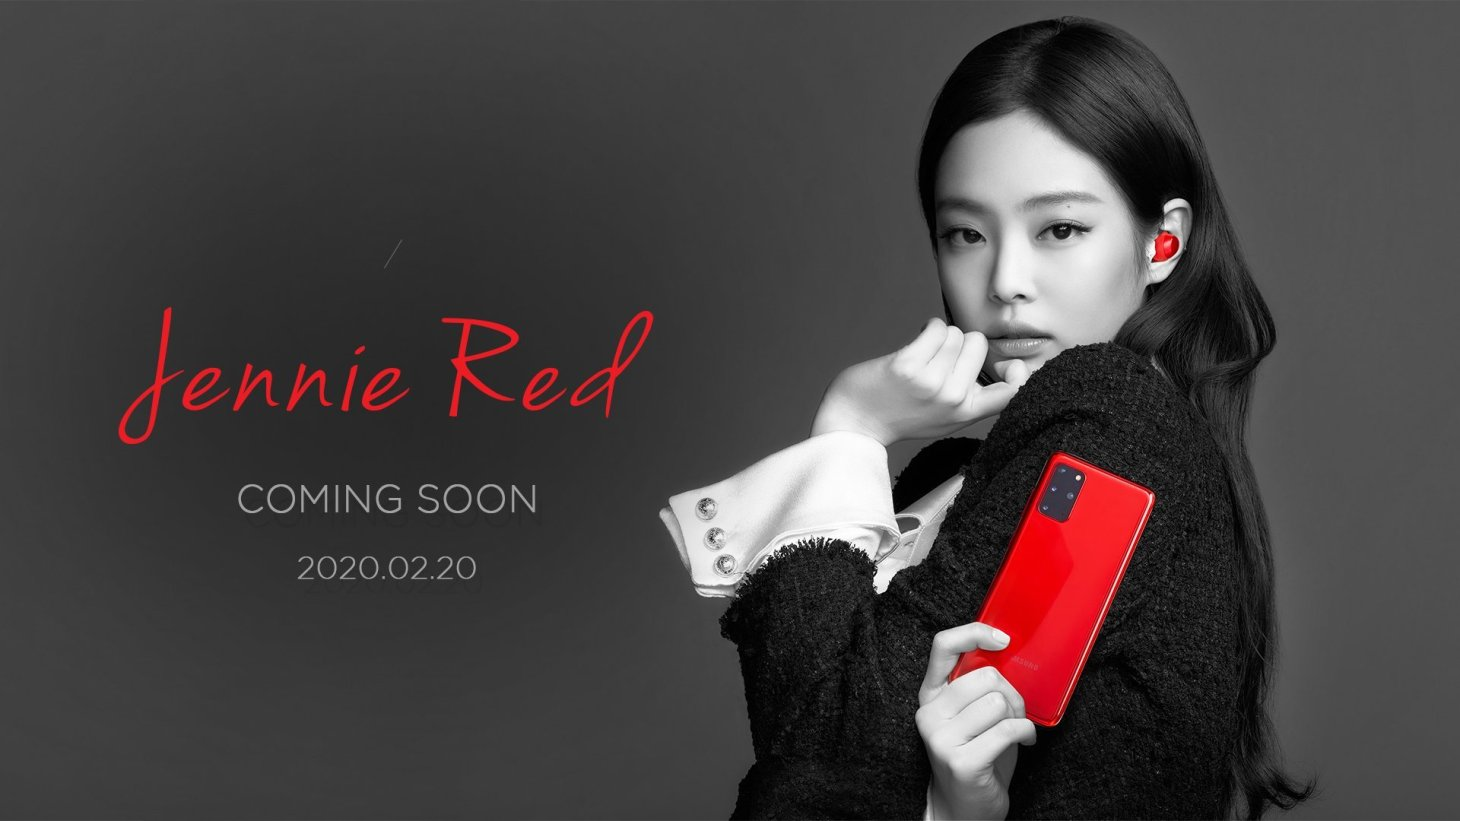 Blackpink S Jennie Gets Own Color For The Galaxy S20 And Galaxy Buds Sammobile